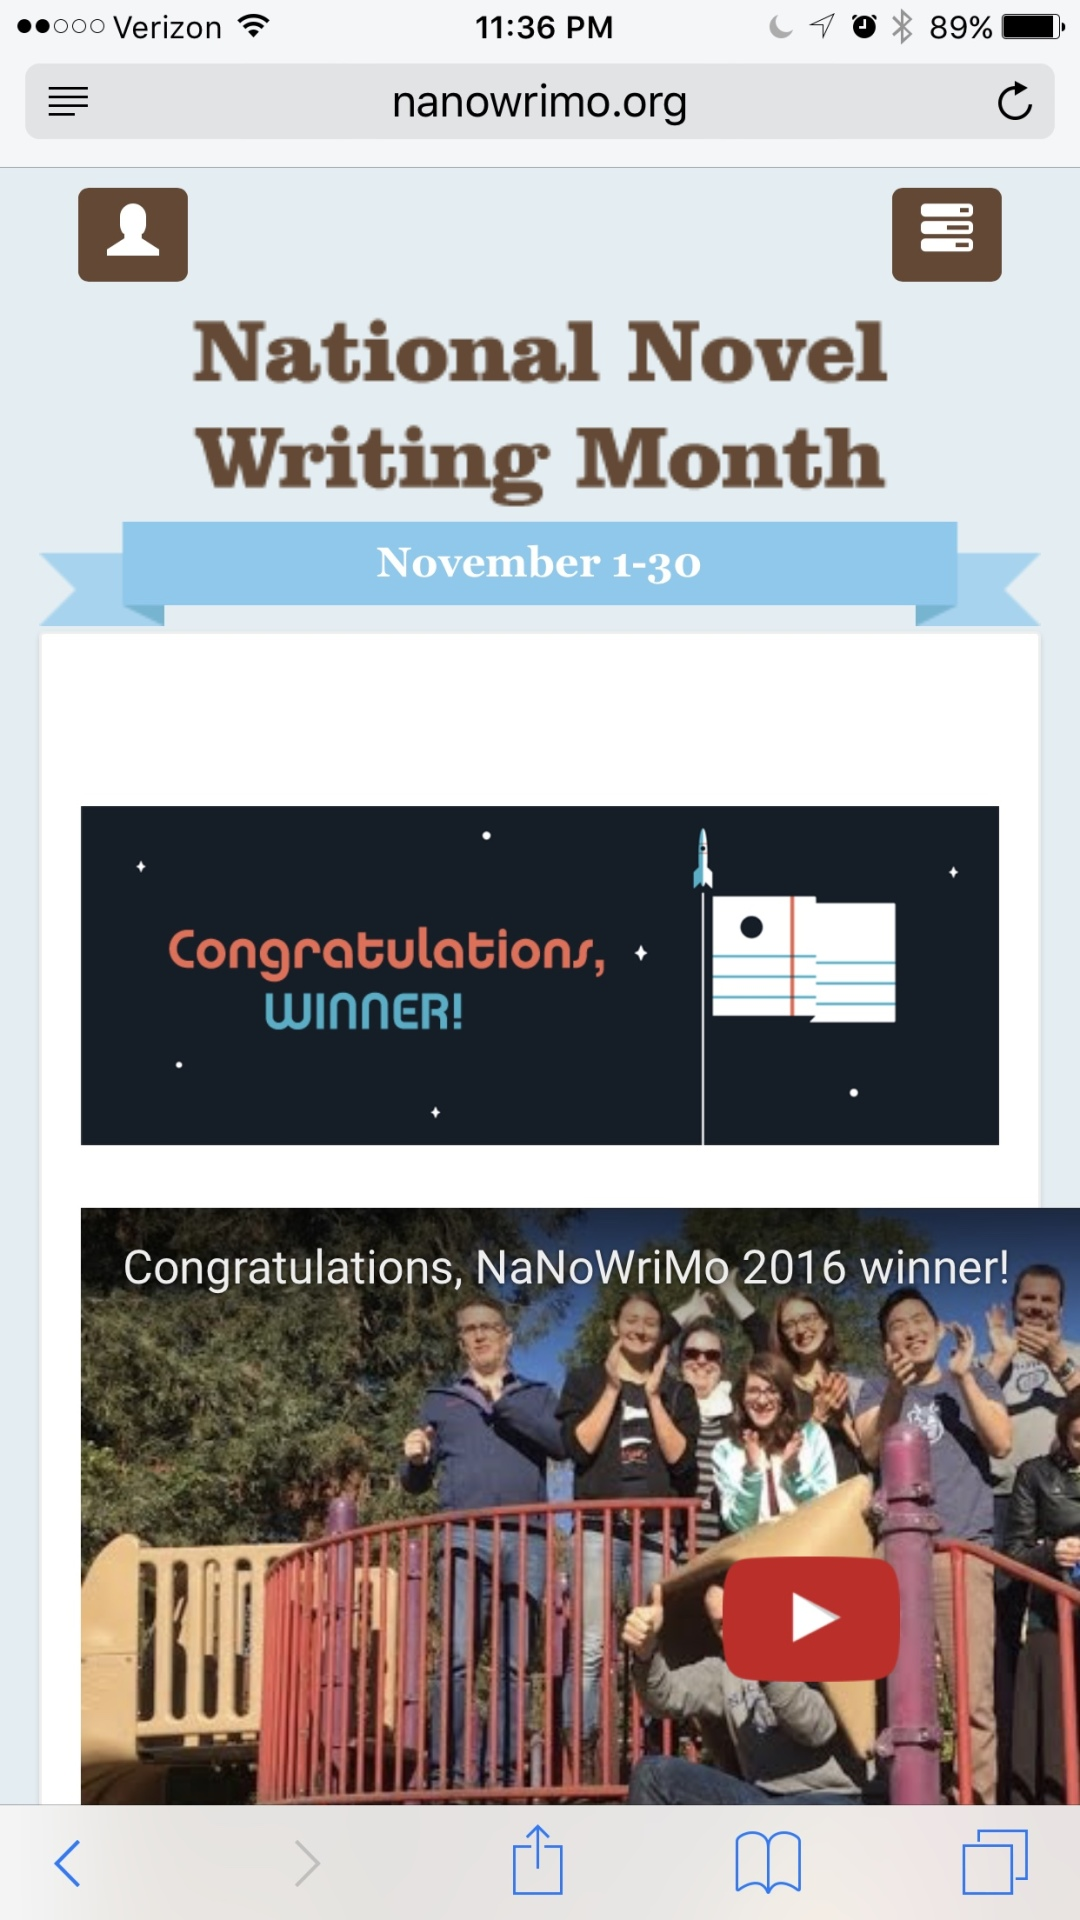 NaNoWriMo 2016 Winner Over Here!